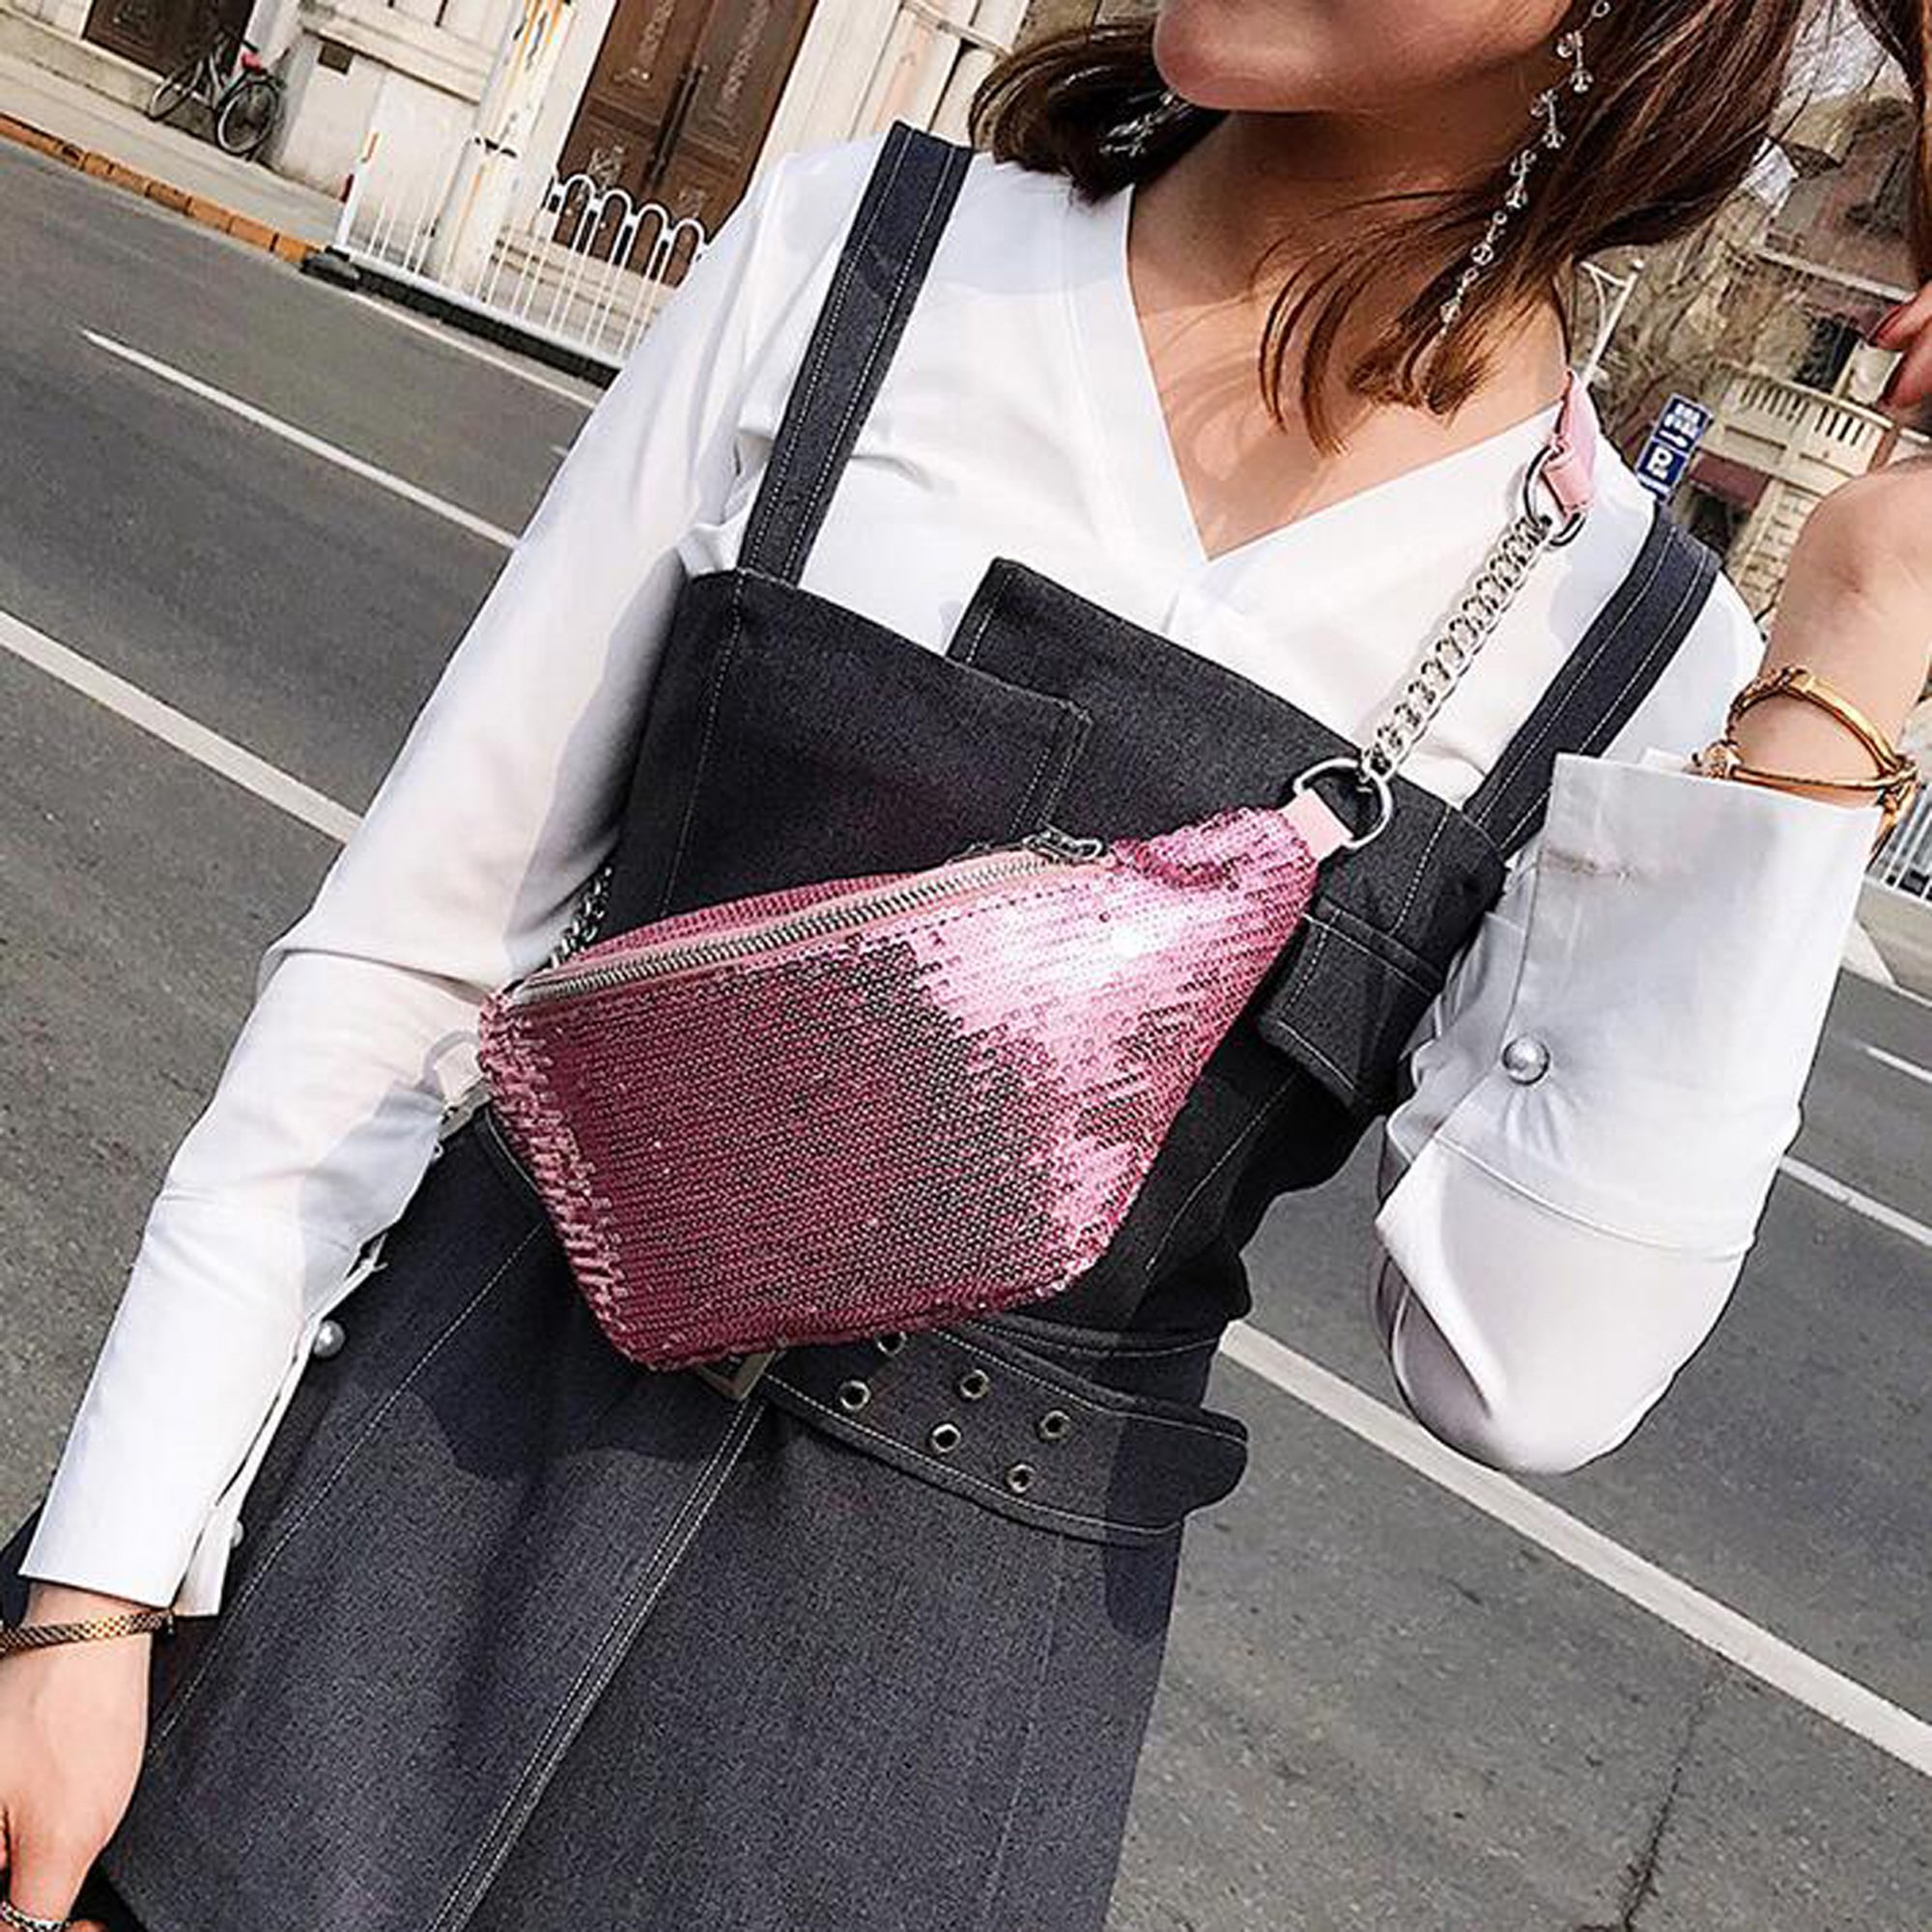 Womens Sequined Waist Fanny Pack Belt Pouch Sling Chest Bag Crossbody Hip Purse (pink) by JIANBAO (Image #3)